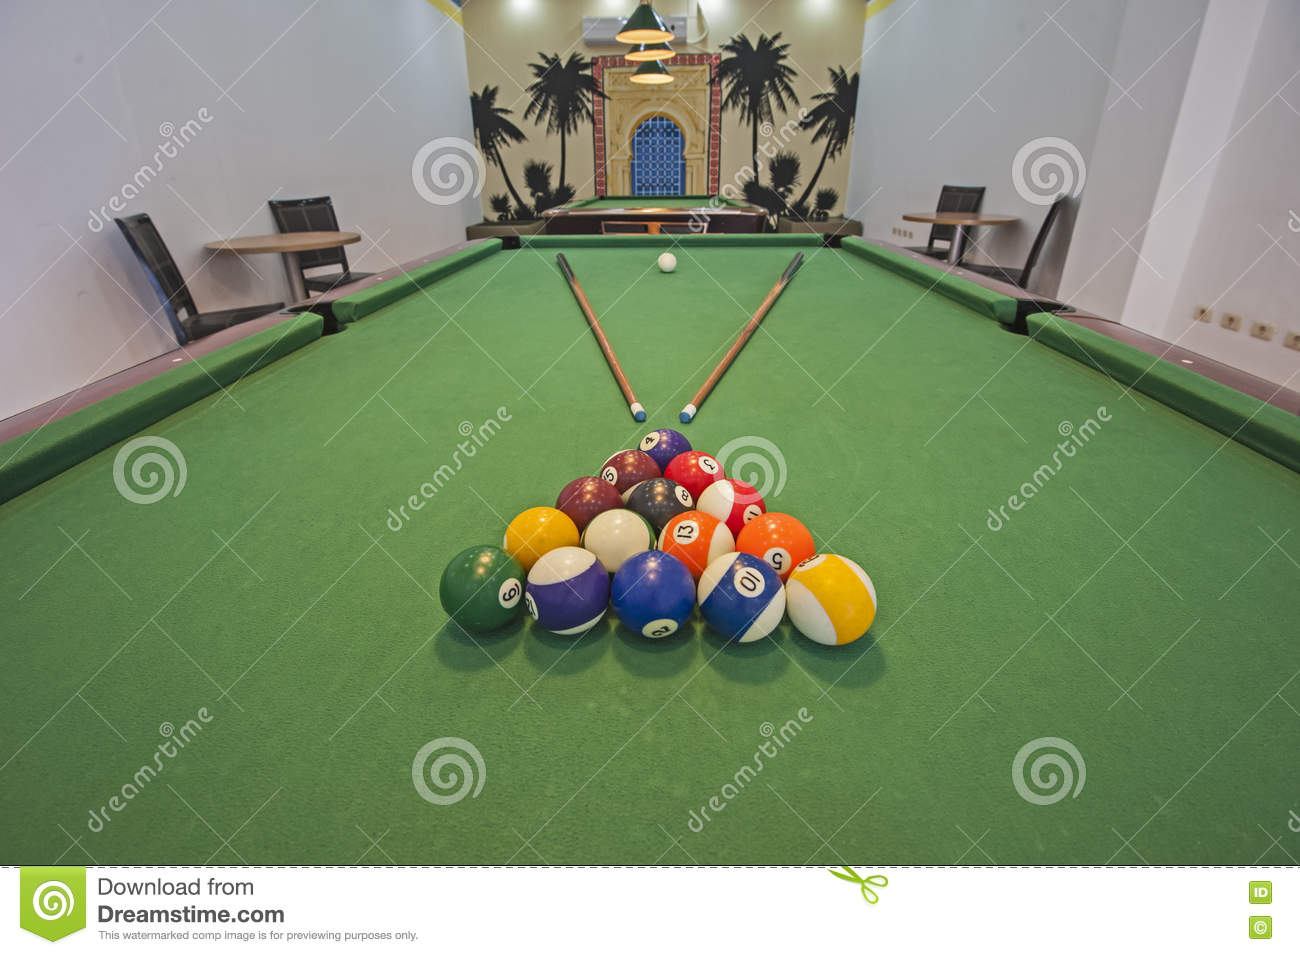 Billiards pool table in a games room royalty free stock - Pool table green felt ...